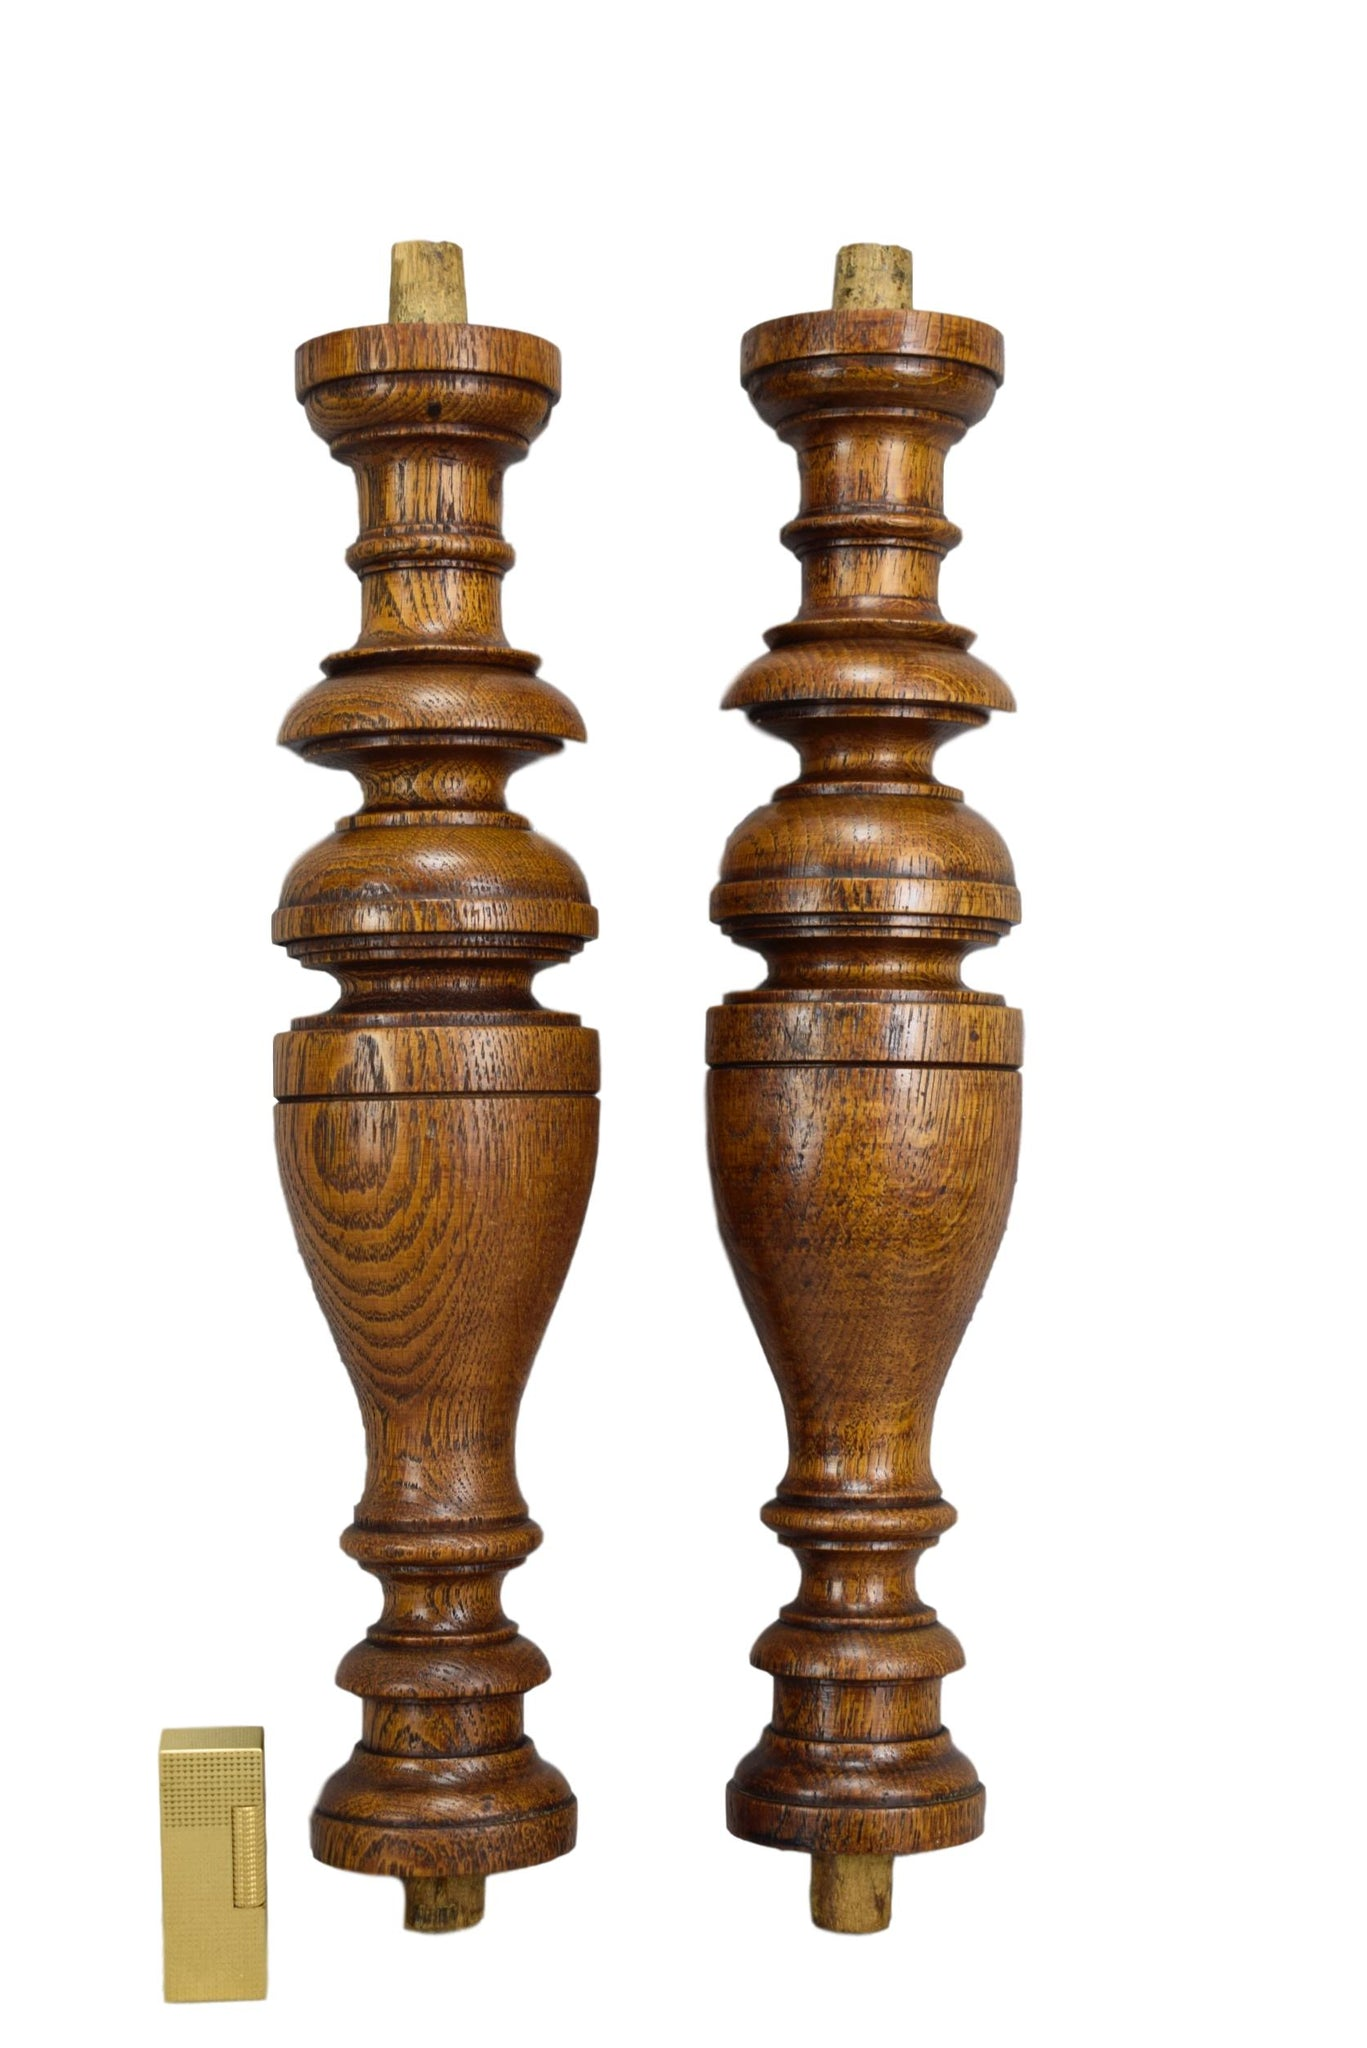 Pair of Small Columns - Charmantiques